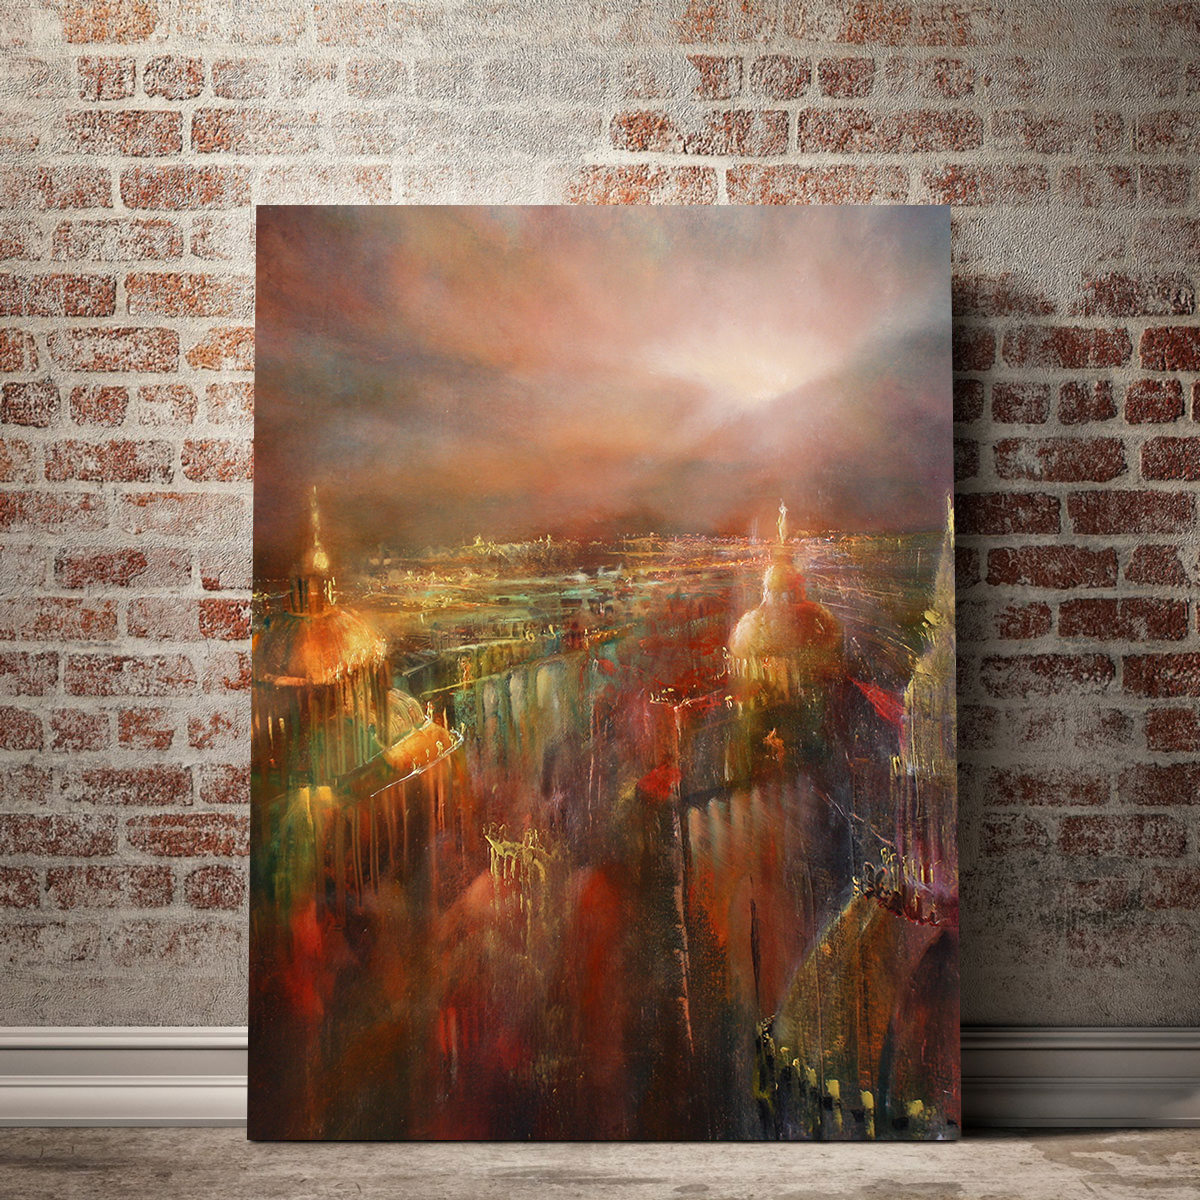 The City Wakes Up #AnnetteSchmucker #supportartists #canvasart #wallart #beautyallaround @annetteschmuckerpic.twitter.com/G8Jt6mXpaS